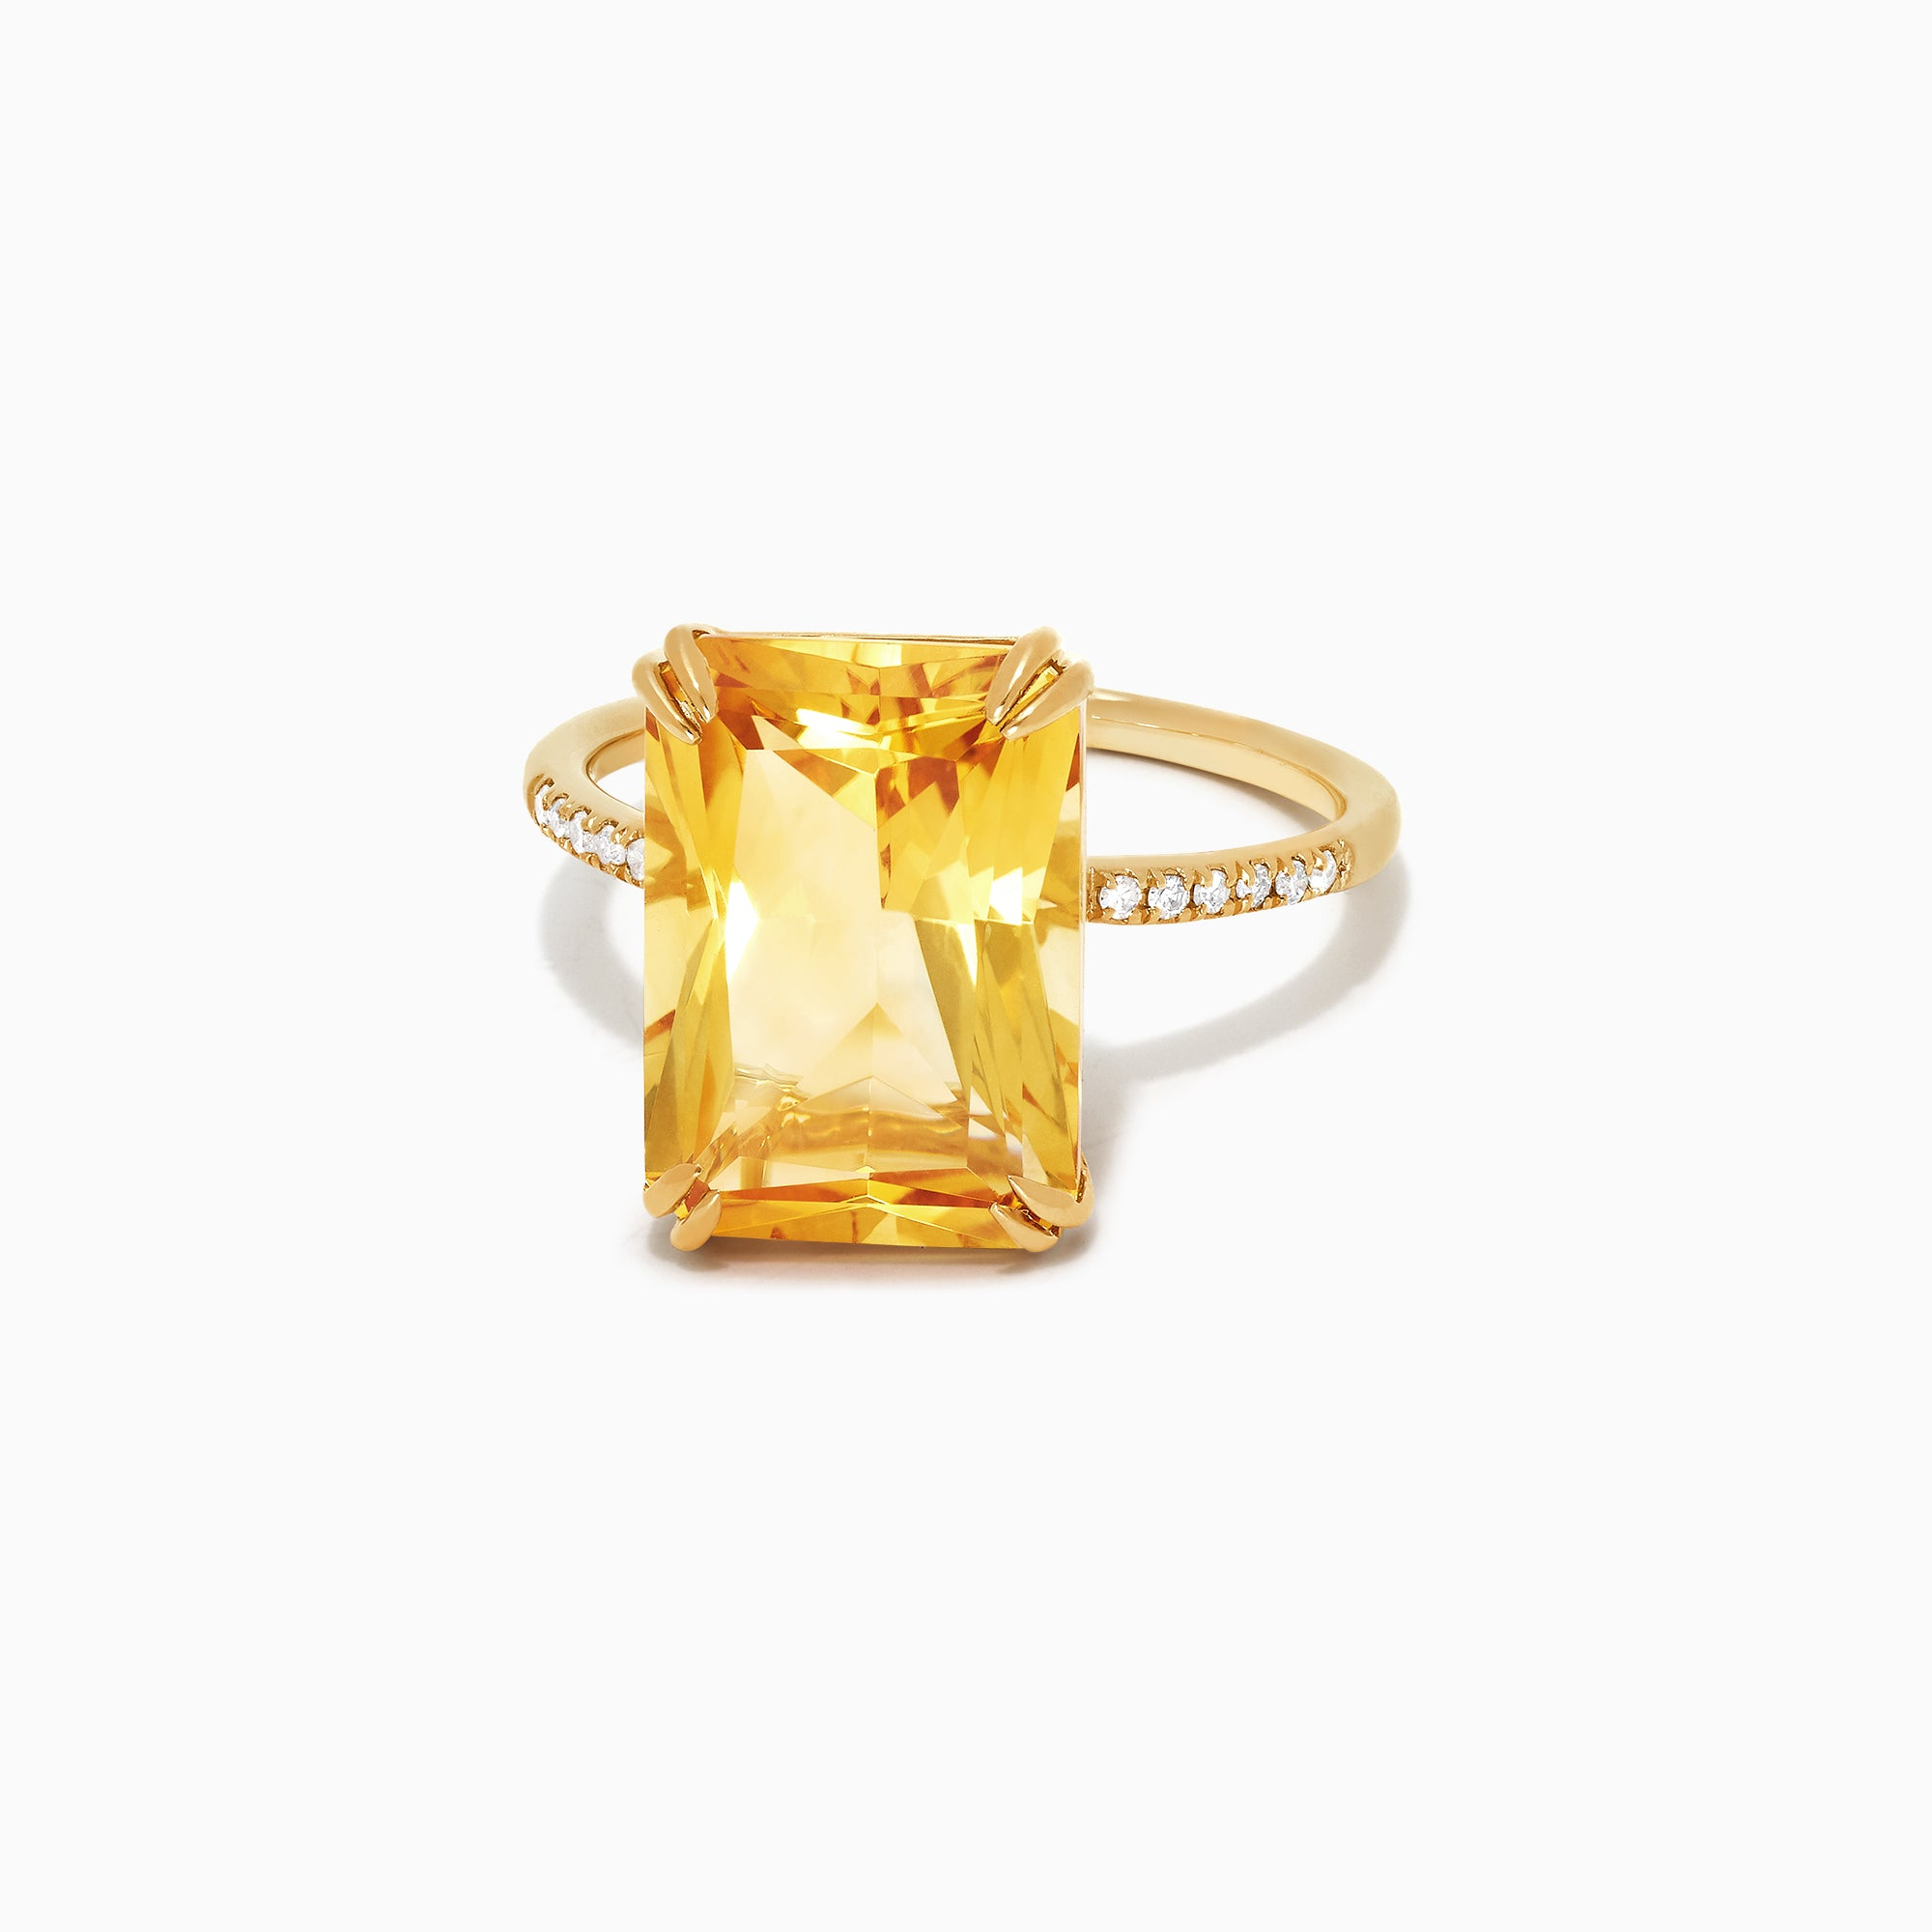 Effy Sunset 14K Yellow Gold Citrine and Diamond Ring, 6.72 TCW